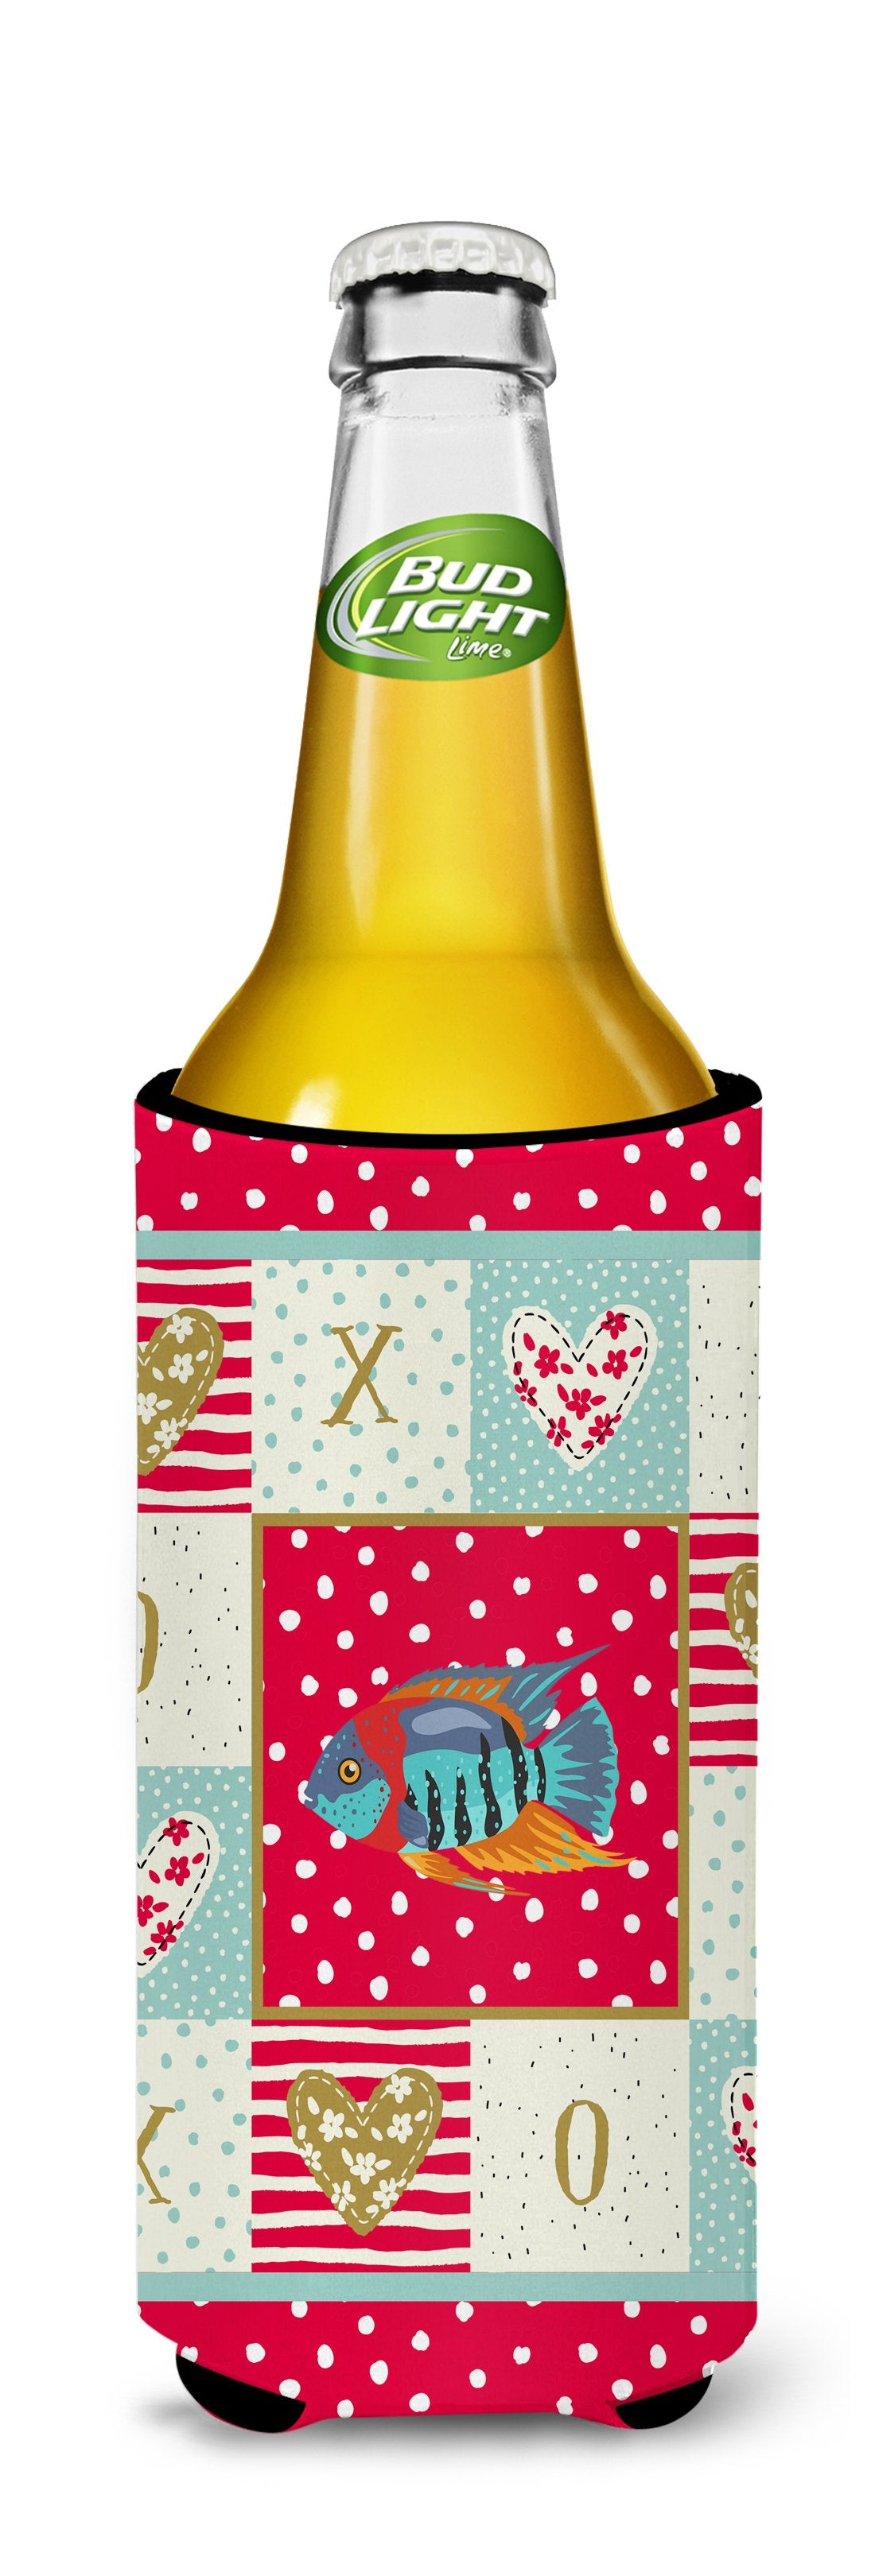 Severum Love Michelob Ultra Hugger for slim cans CK5497MUK by Caroline's Treasures